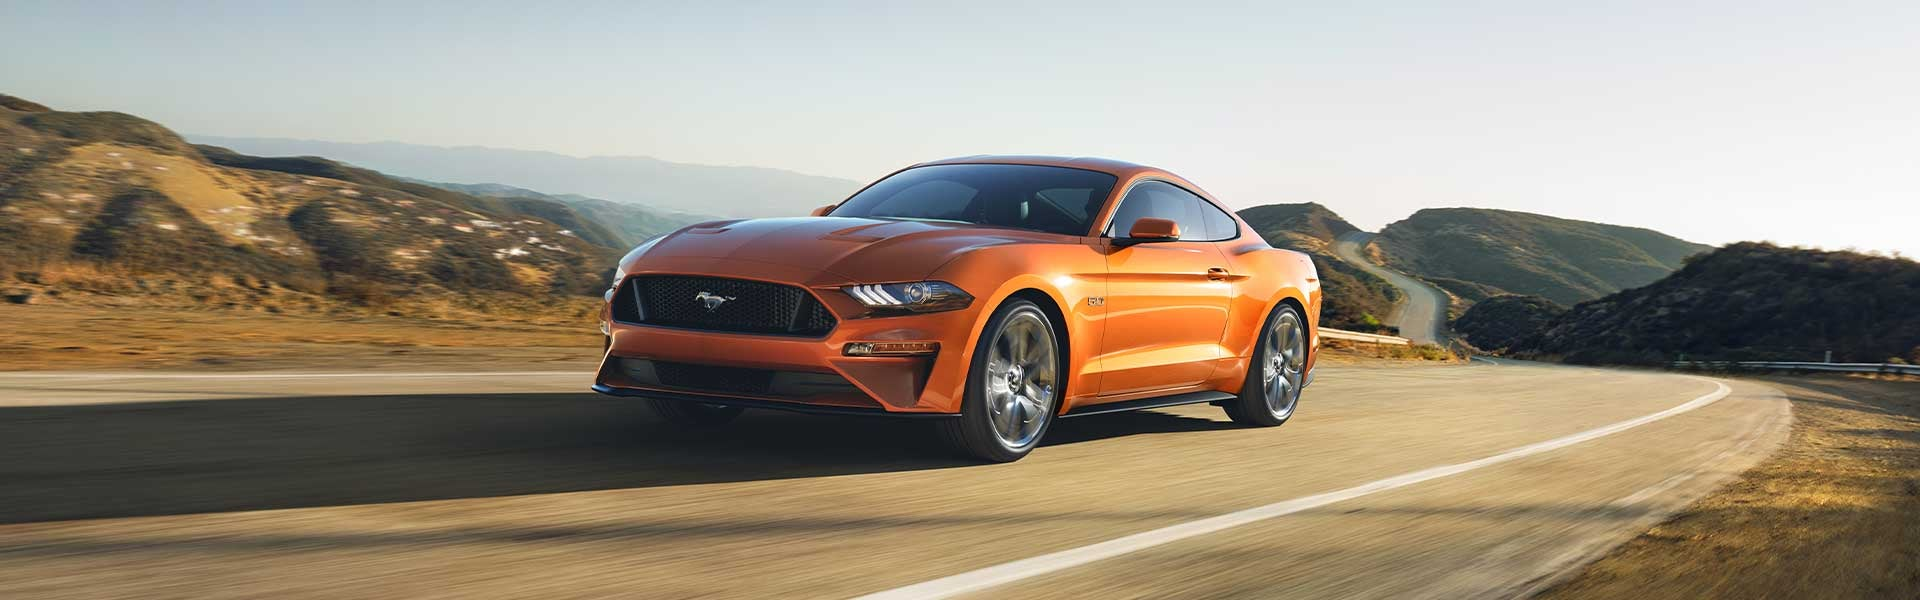 2020 Ford Mustang | Tindol Ford ROUSH, My Ford Dealer